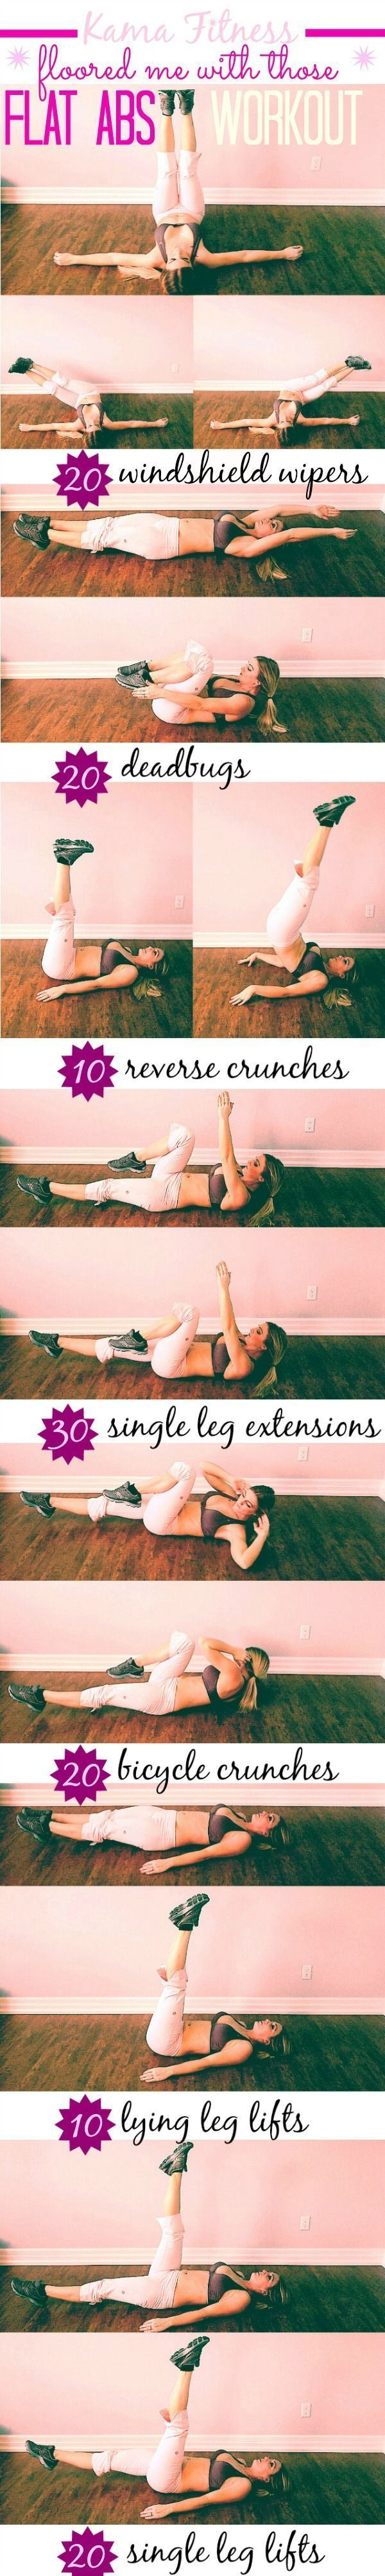 Ab workout! #abs #workout Get Sexy Abs with our simple Workout on our website